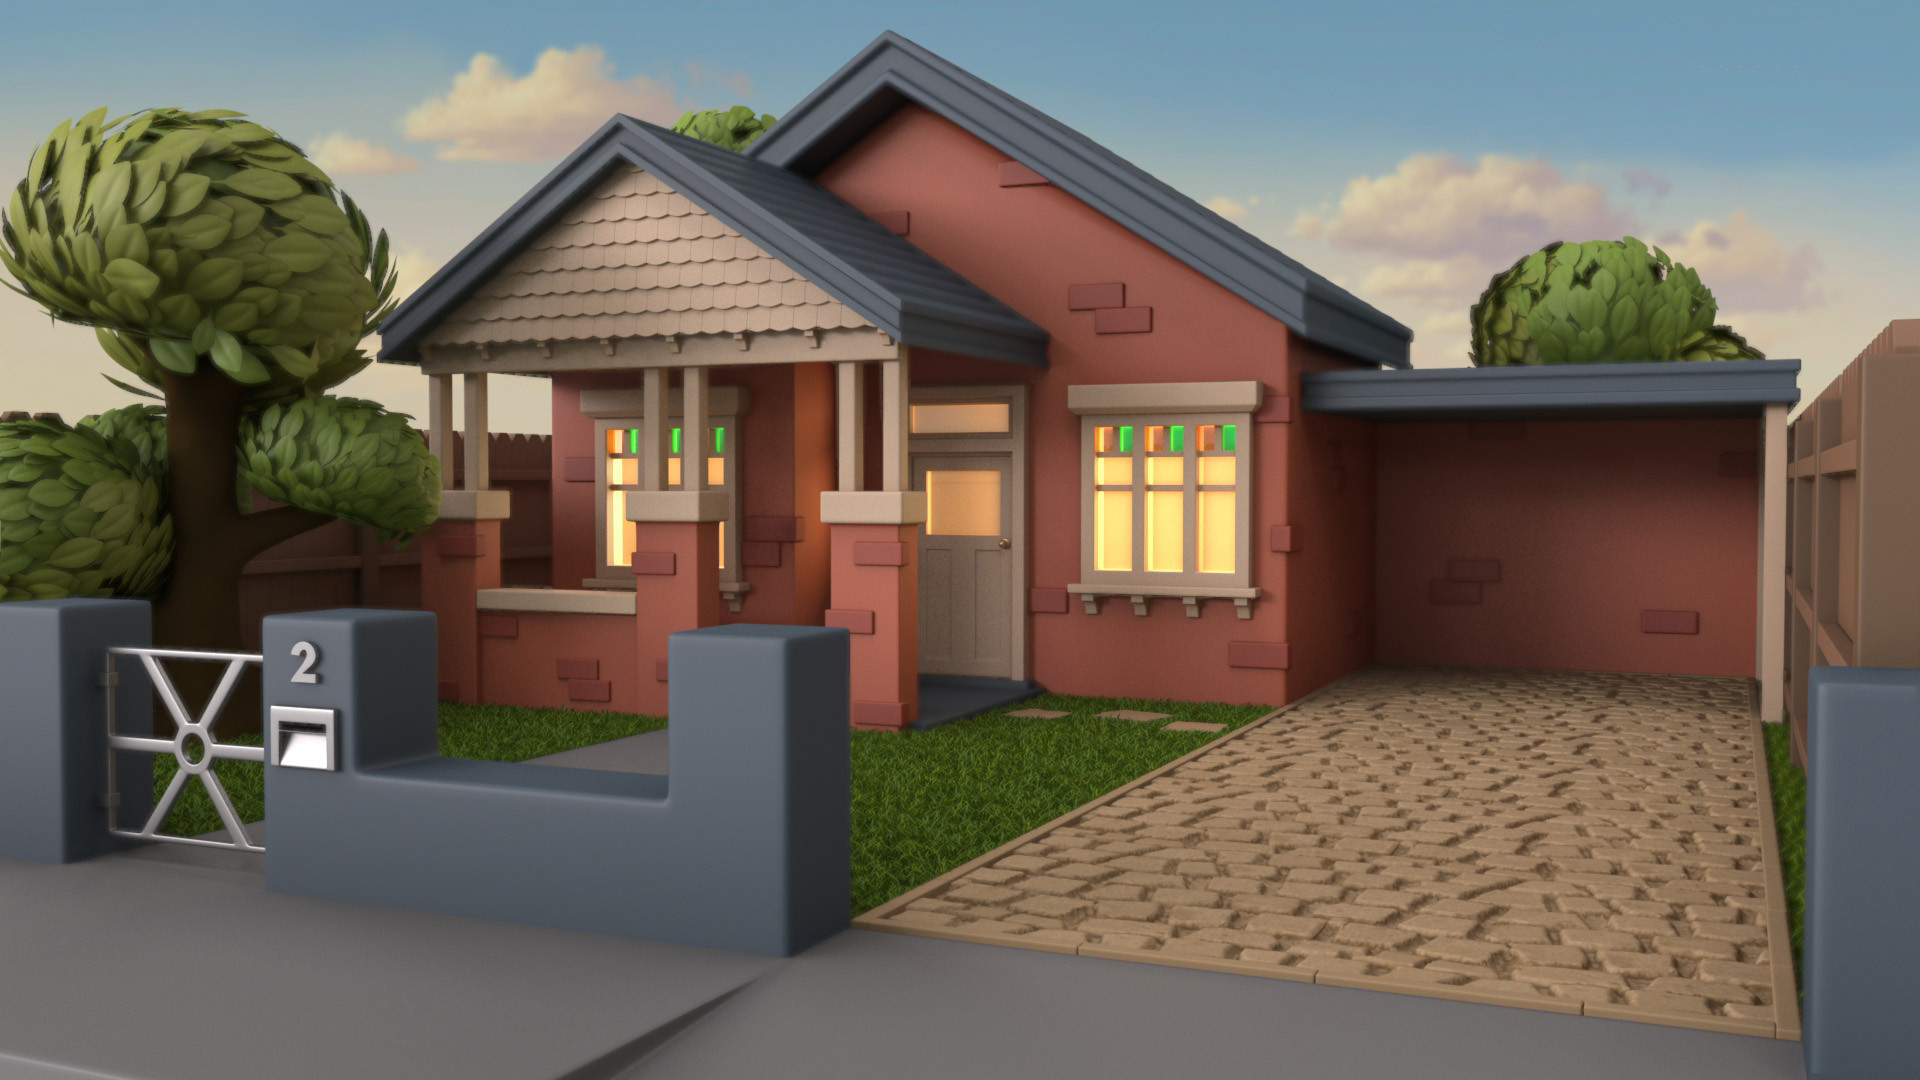 Carly glover wip houserender01